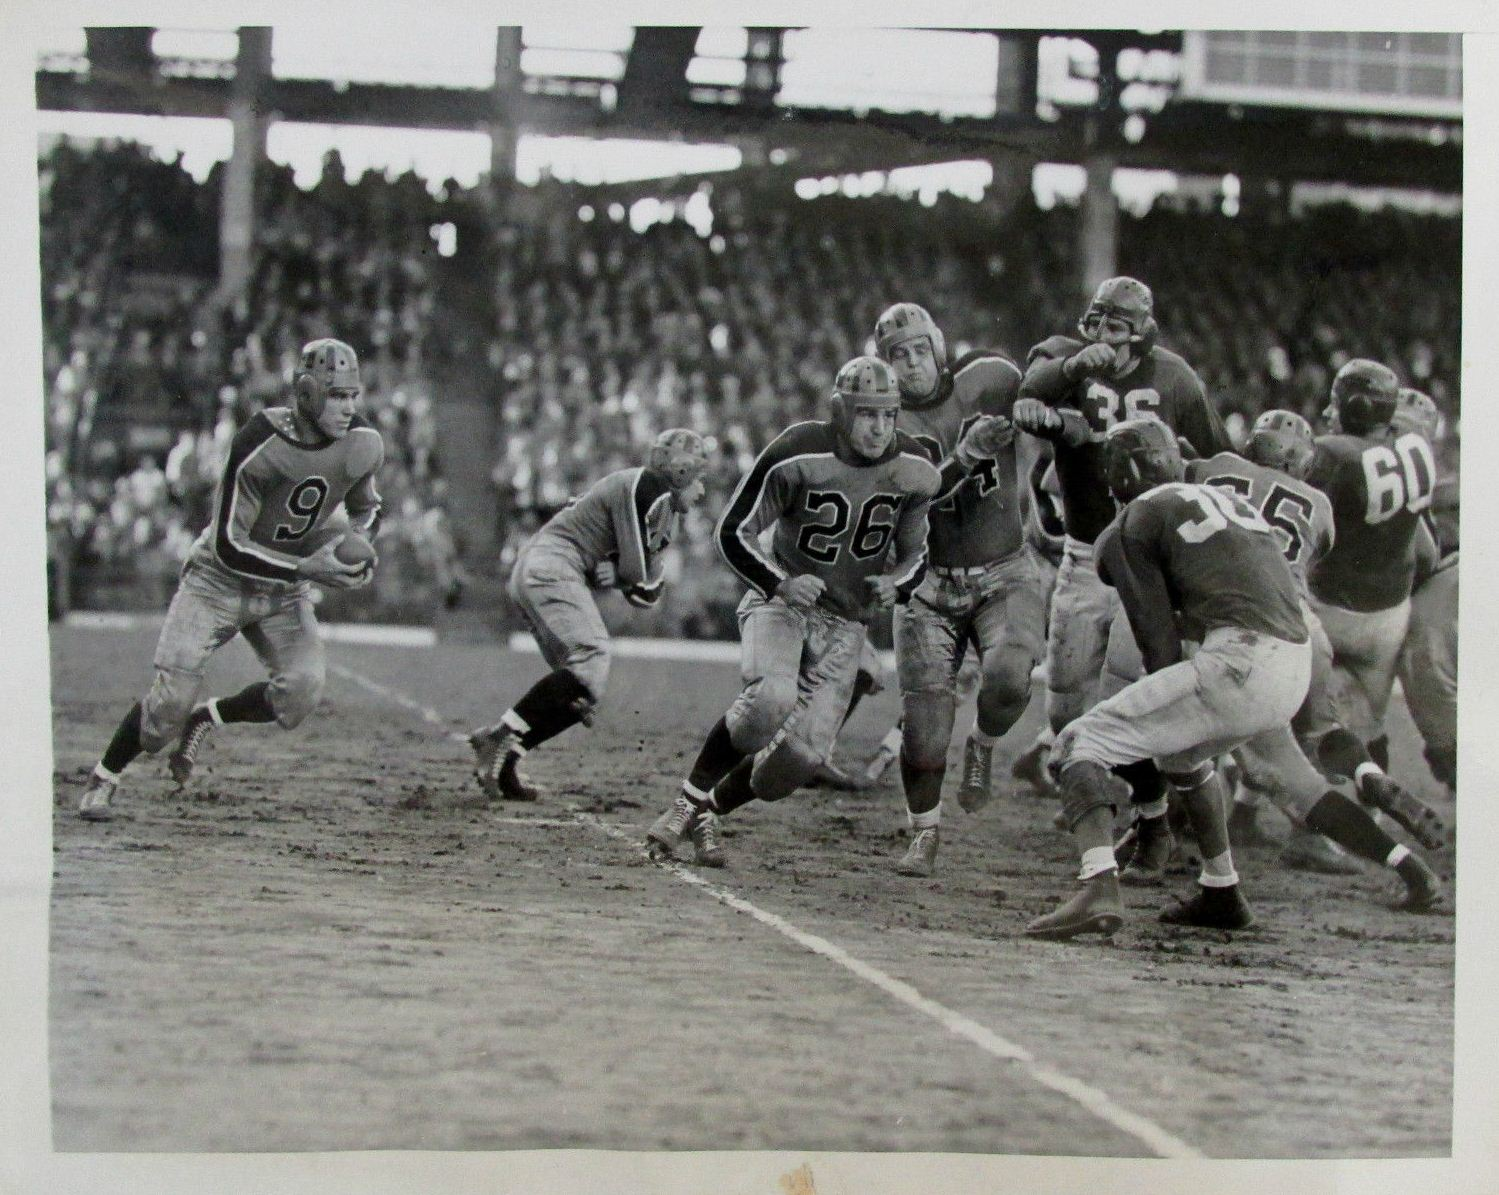 Frank Cope (36) and Len Younce (60), New York Giants at Brooklyn Tigers (October 15, 1944)